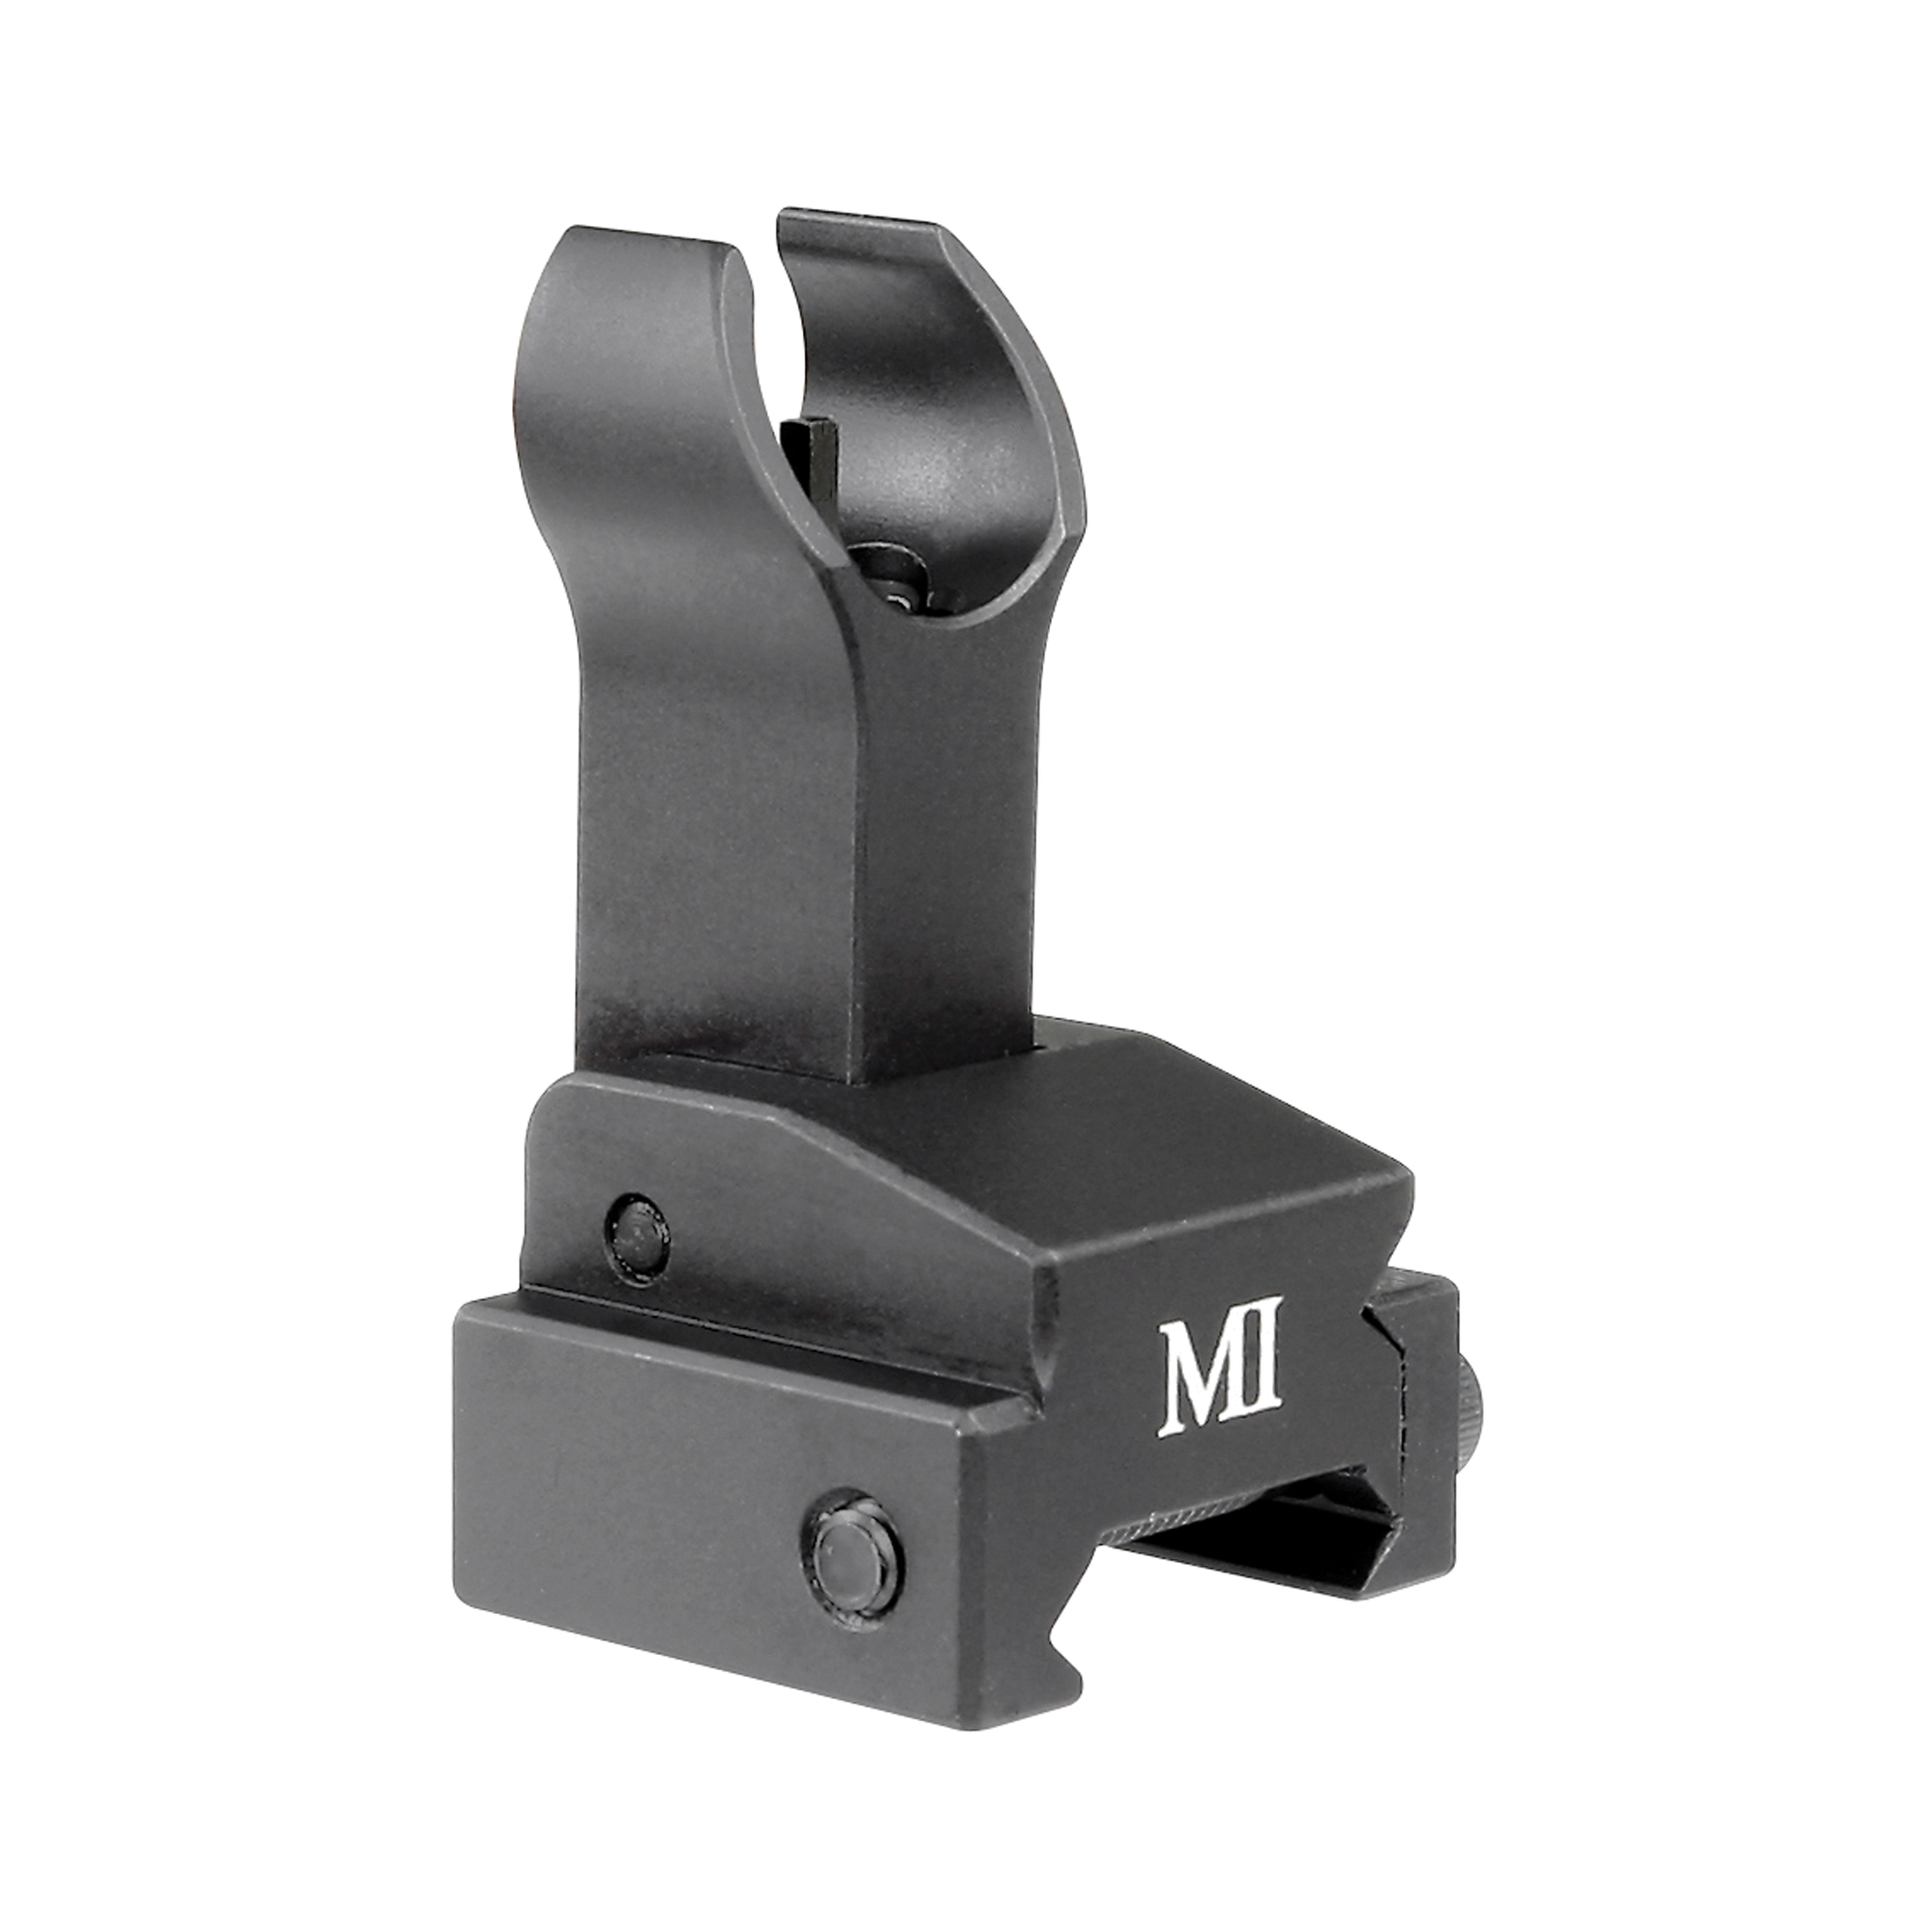 Midwest Industries Flip-Up Front Sight Gas Block Mount. All of Midwest Industries products focus on providing top notch quality and reliability you expect from products made in the U.S.A. Backed by Midwest Industries Lifetime Warranty.